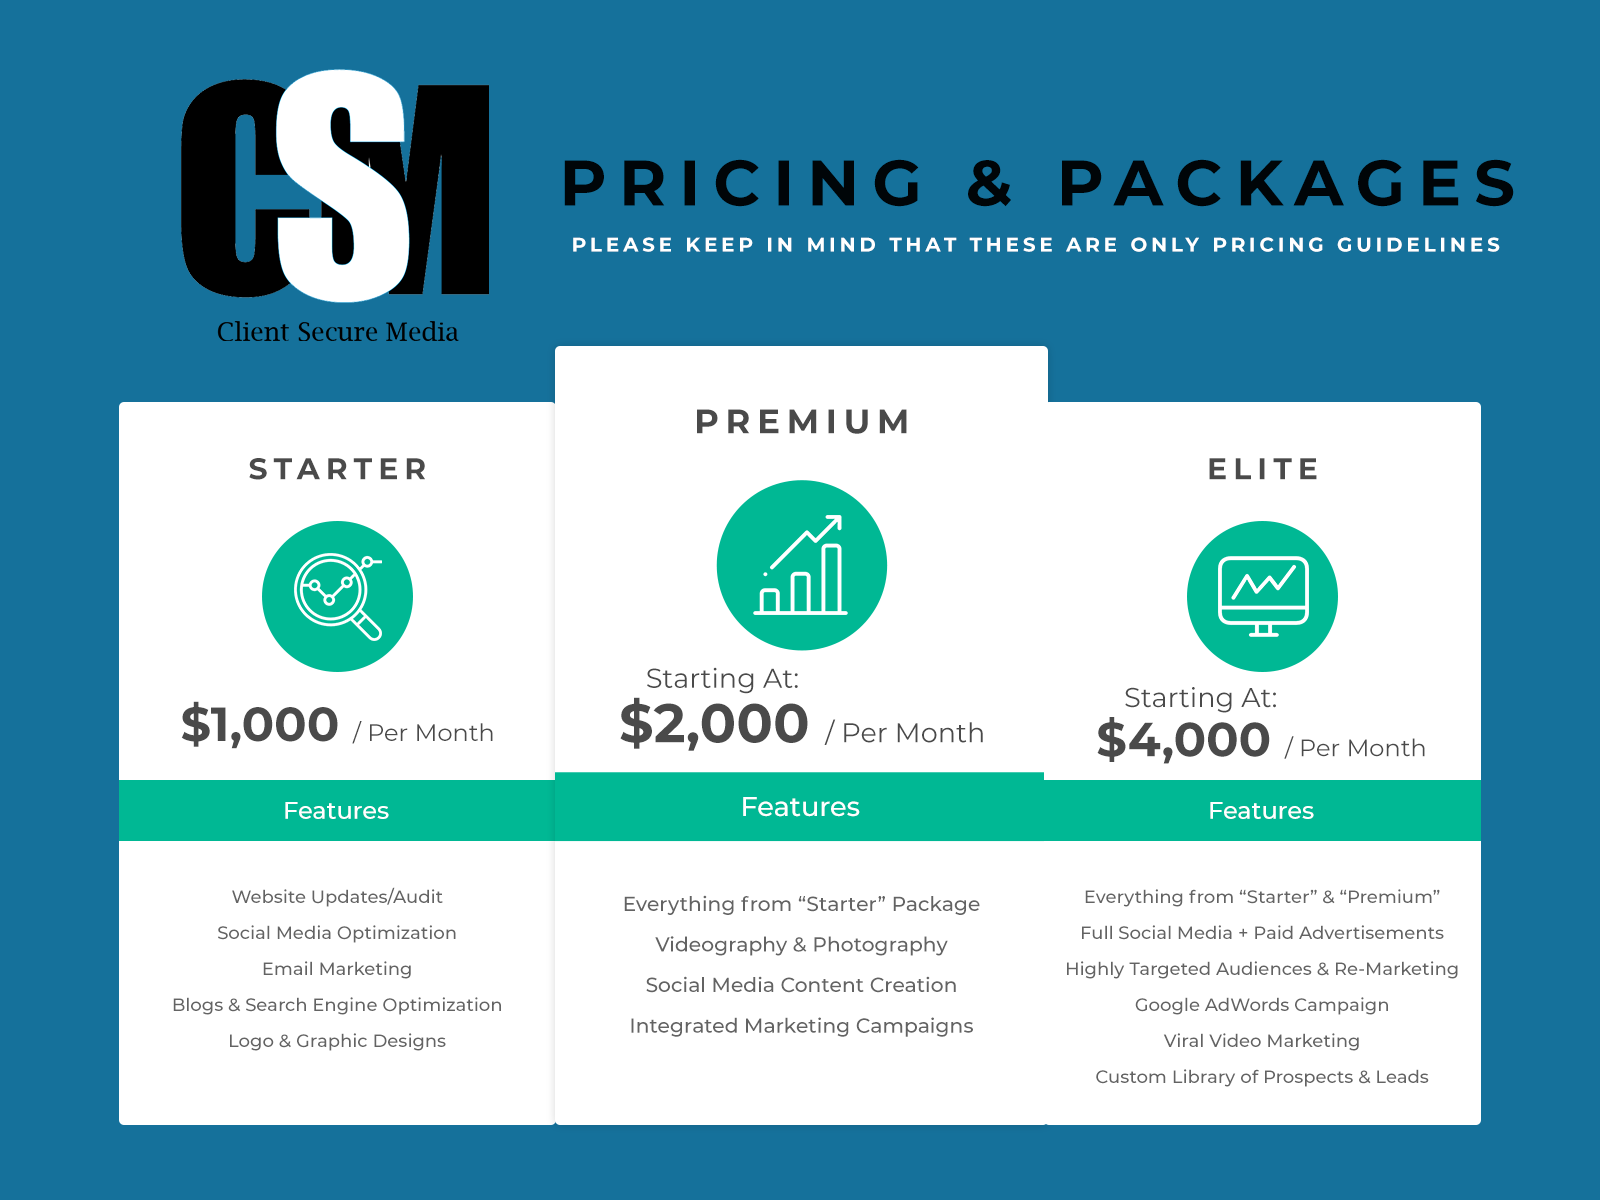 Pricing & Packages - Client Secure Media.png